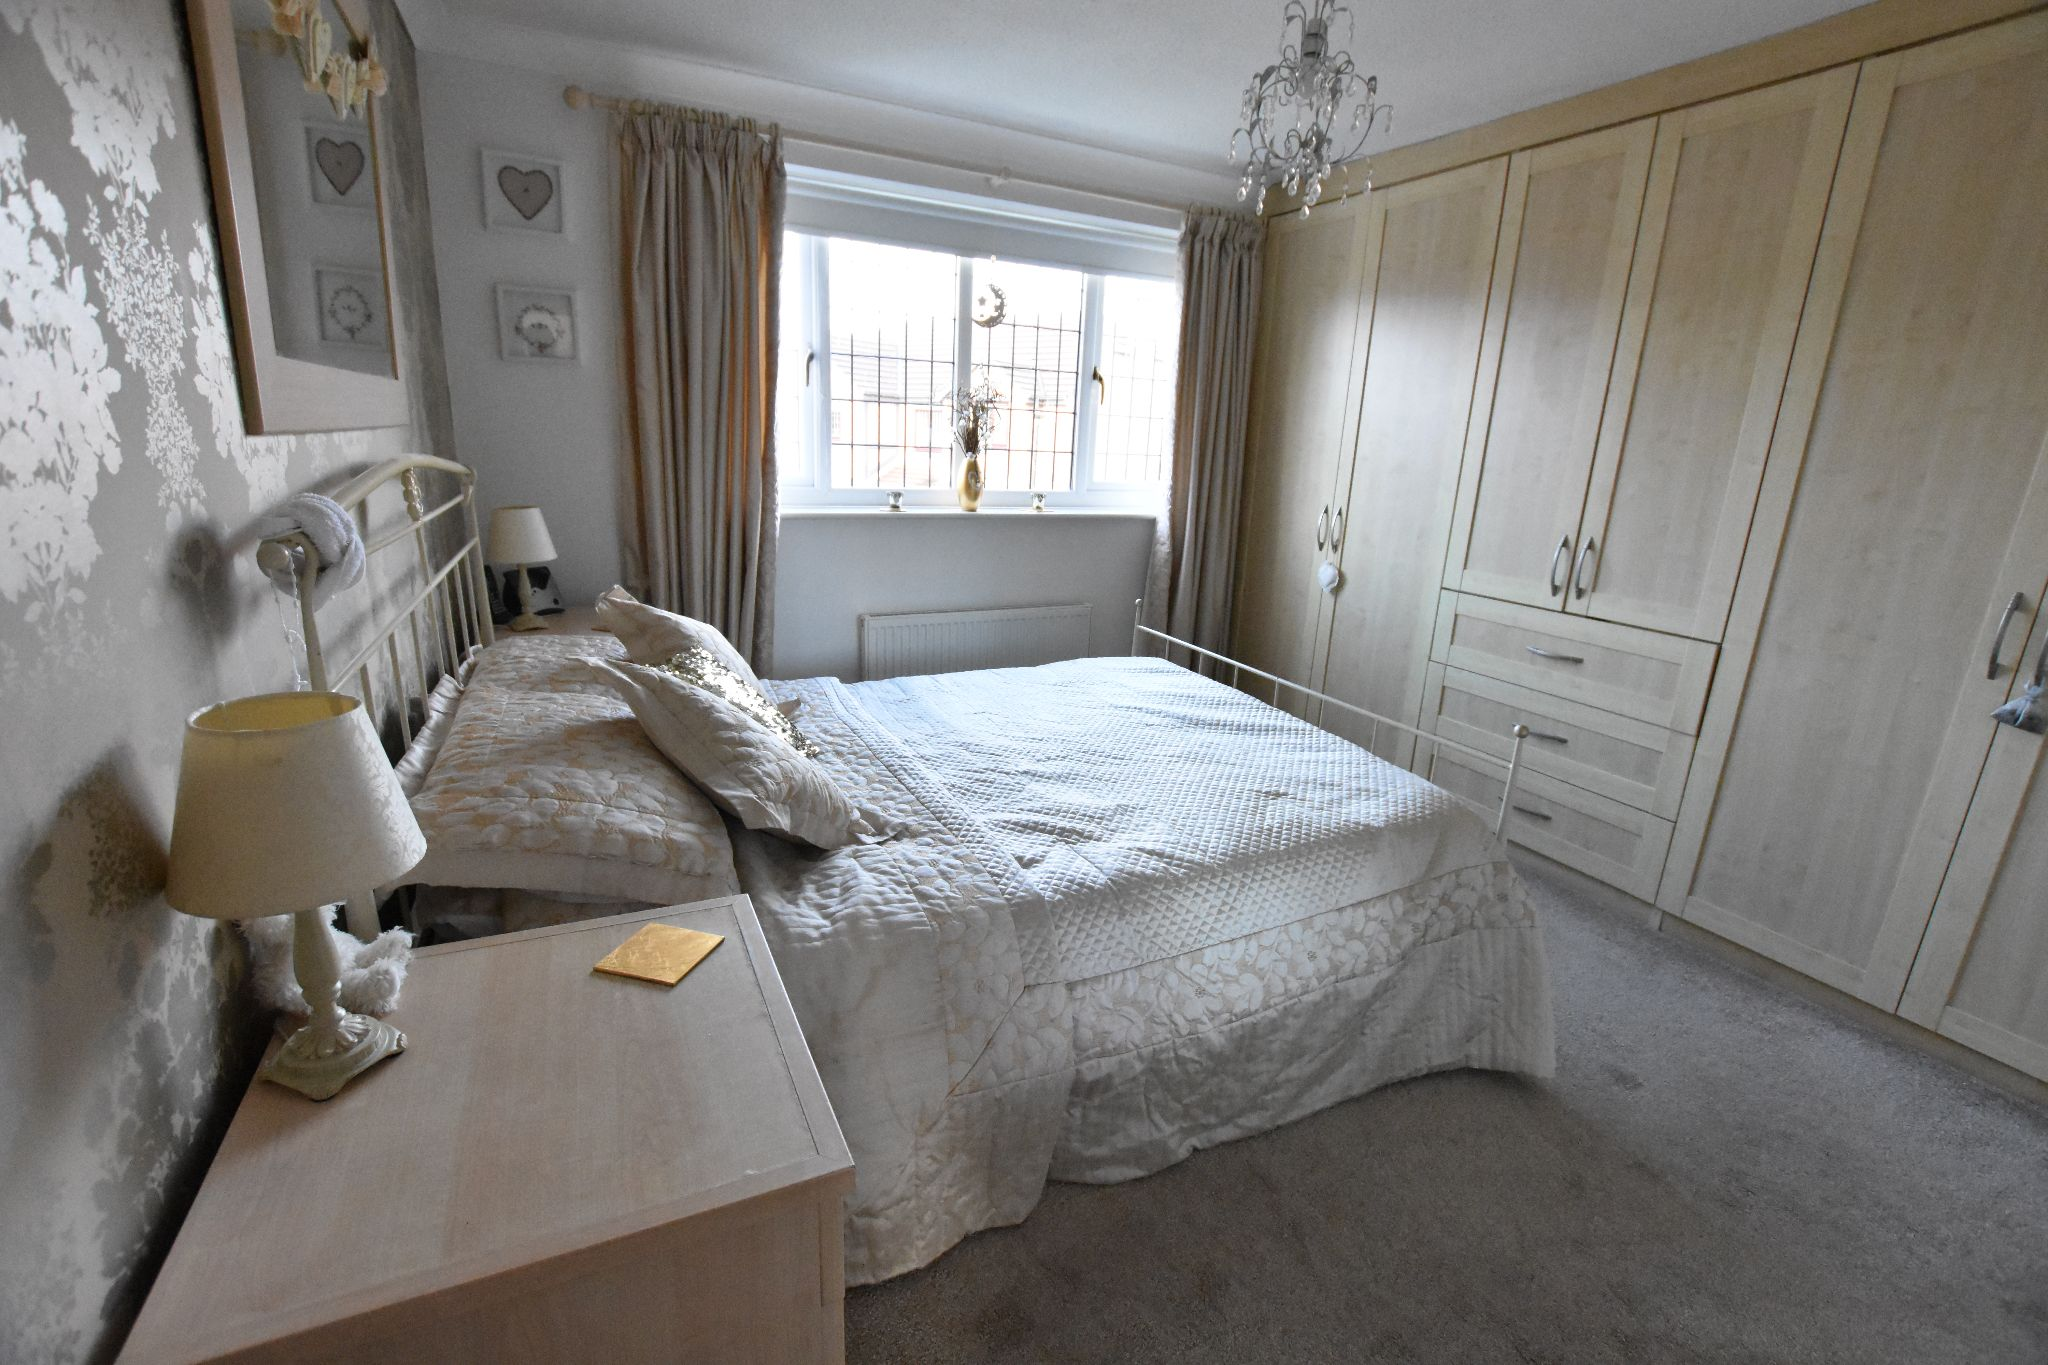 4 bedroom detached house Sold STC in Lytham St. Annes - Bedroom 1